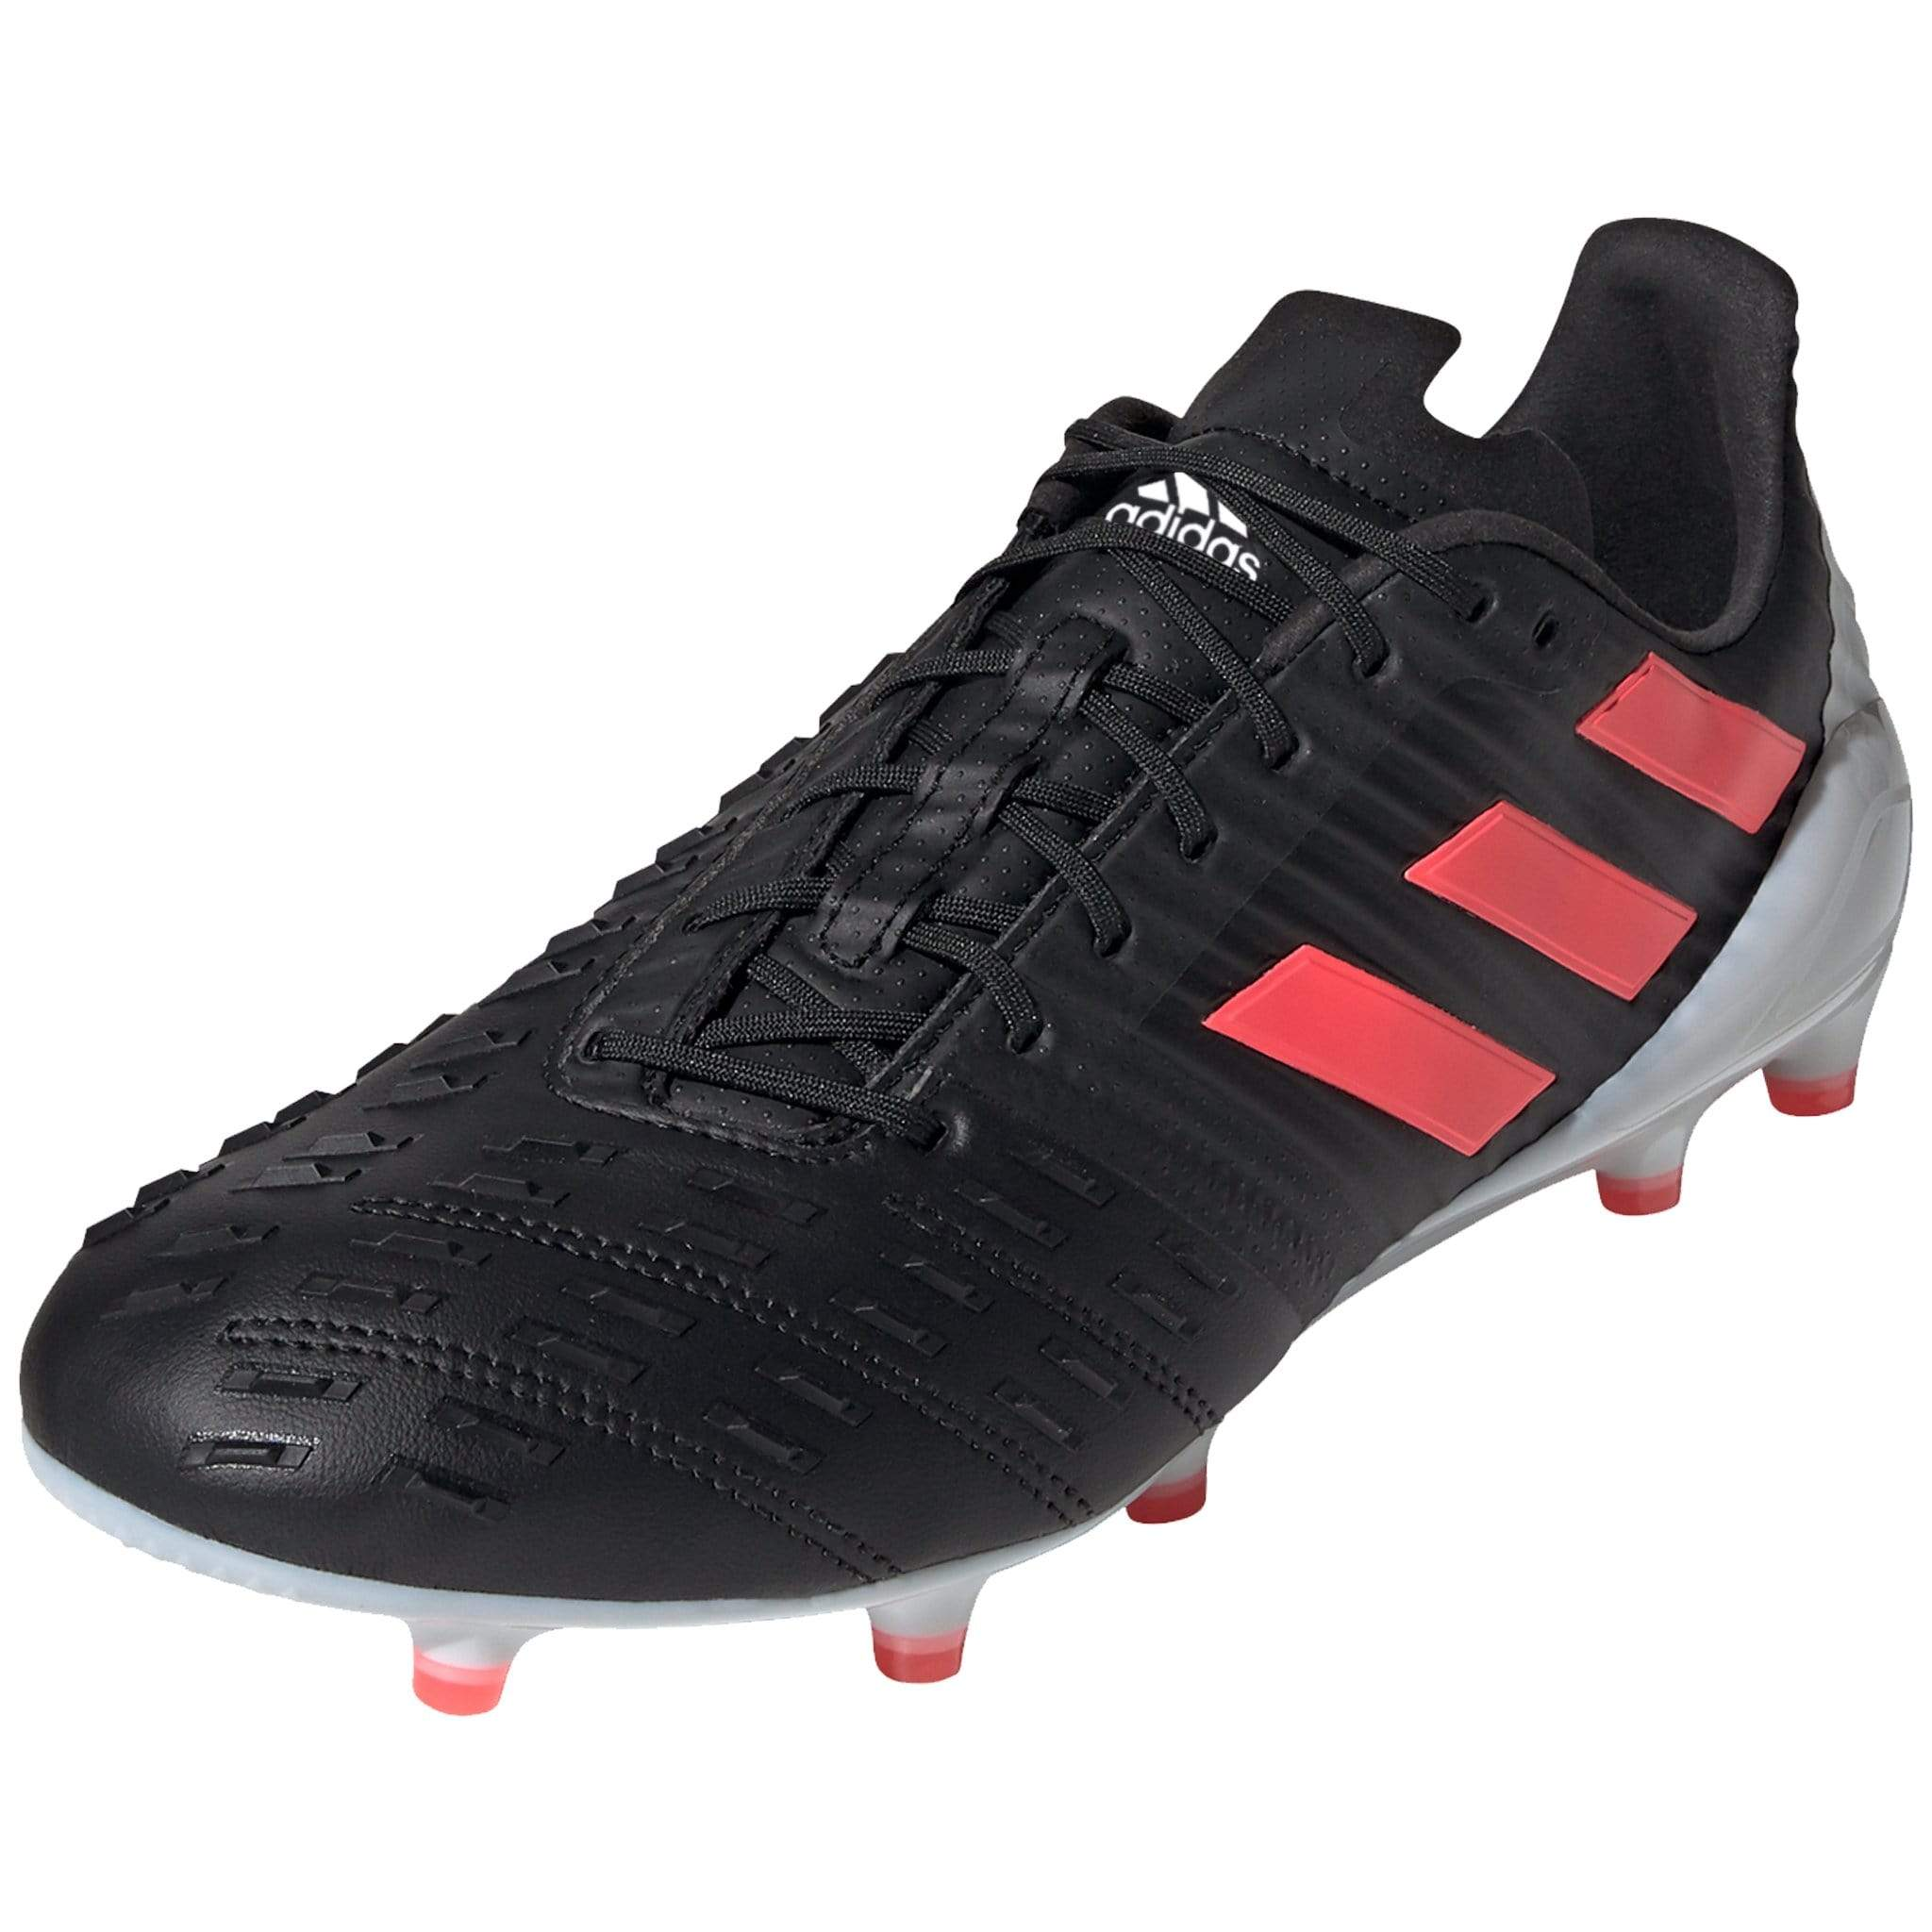 Overall View Black Adidas Rugby Boot With Black Laces and Pink Stripes